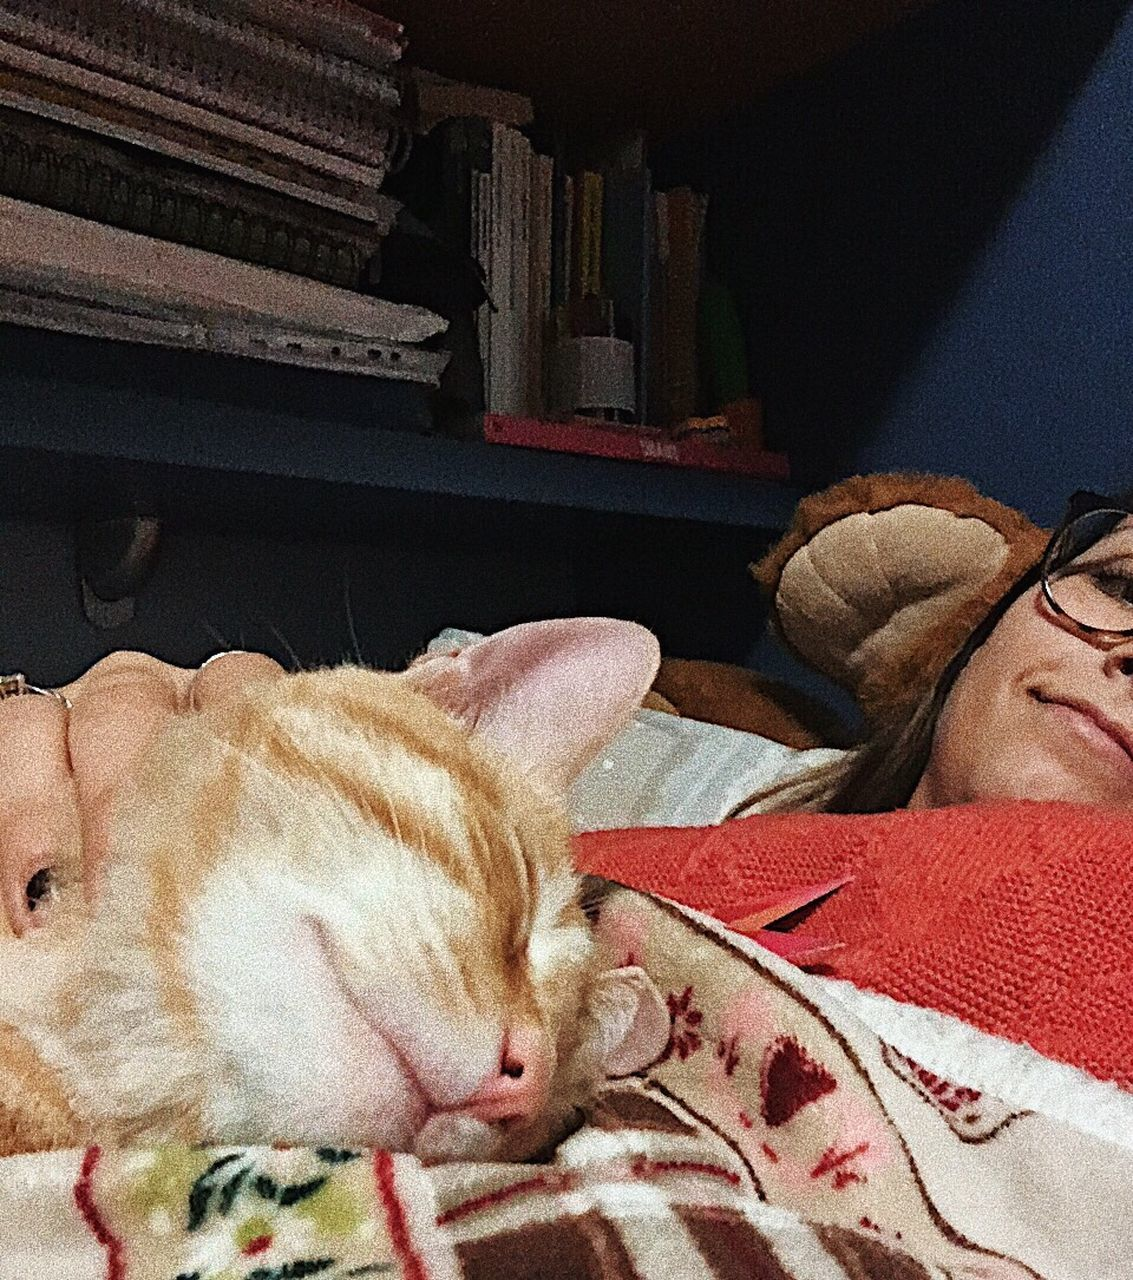 domestic, pets, domestic animals, mammal, animal themes, animal, relaxation, one animal, vertebrate, sleeping, feline, cat, resting, indoors, domestic cat, furniture, eyes closed, canine, dog, lying down, no people, whisker, animal head, napping